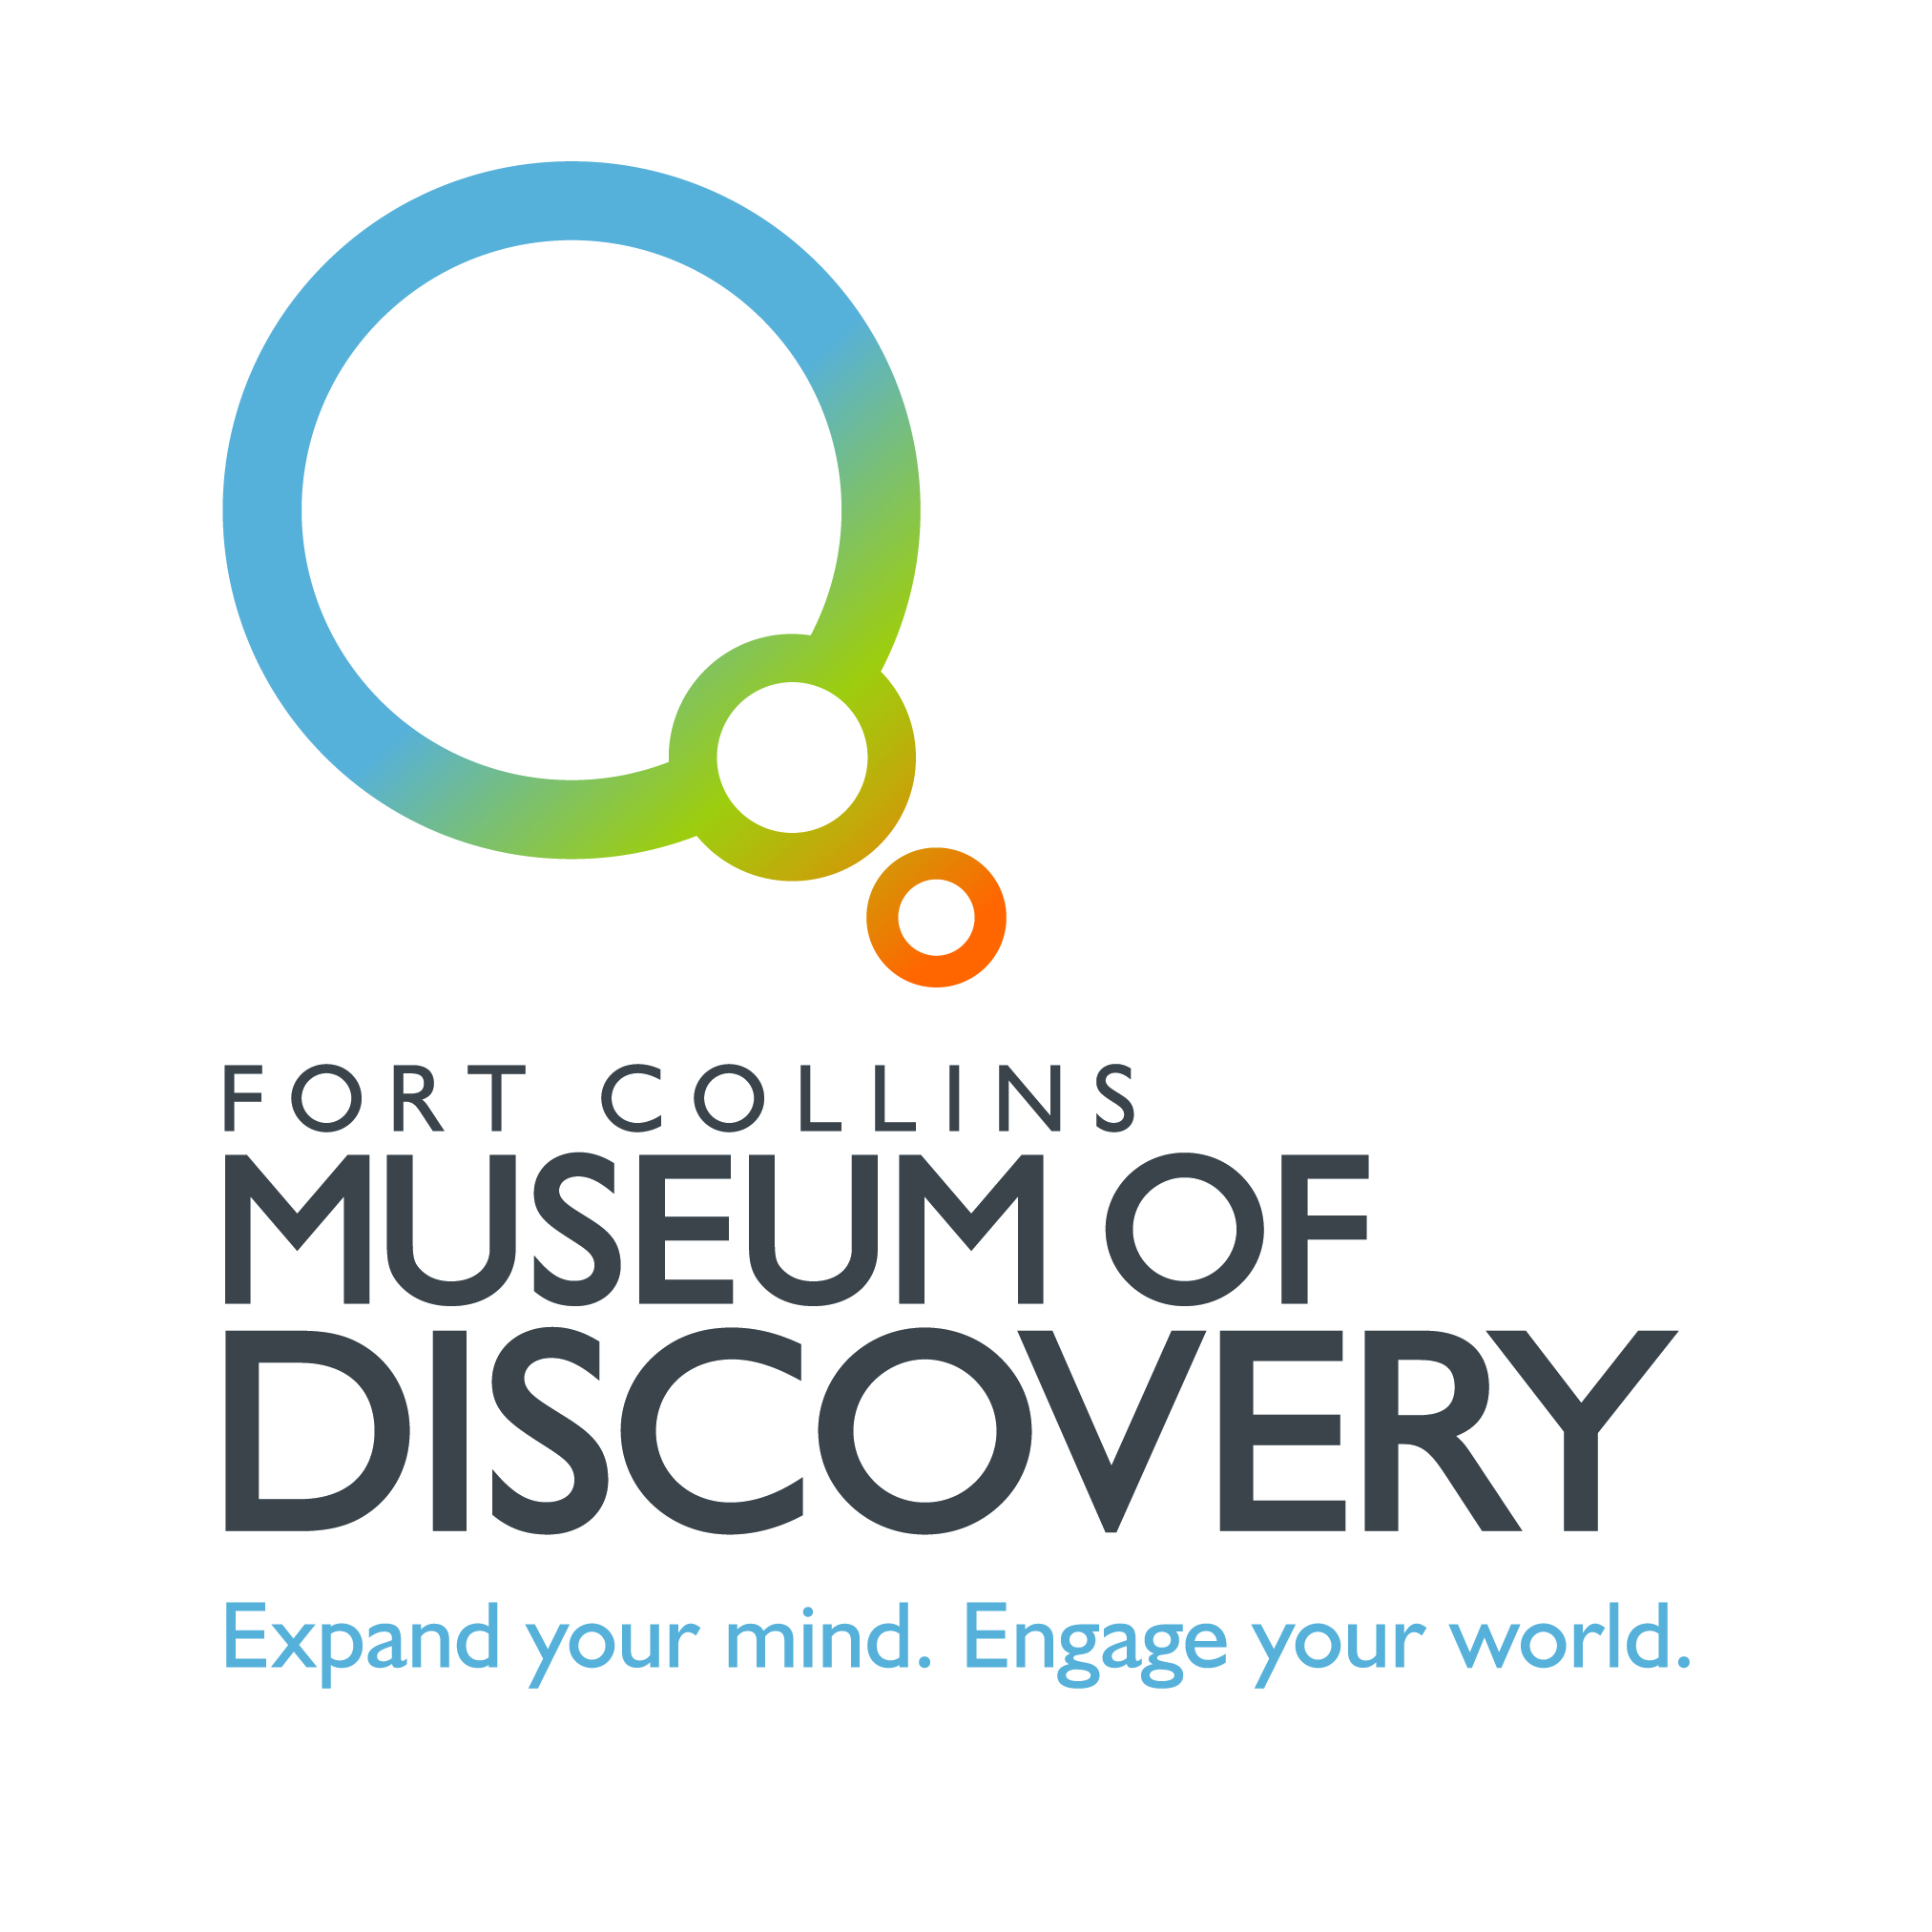 We are so proud to once again partner with the Fort Collins Museum of Discovery and their Otterbox Digital Dome. This unique venue provides local artists the opportunity to create new work in an emerging medium. It also provides a fun and engaging performance venue for our audiences to enjoy.